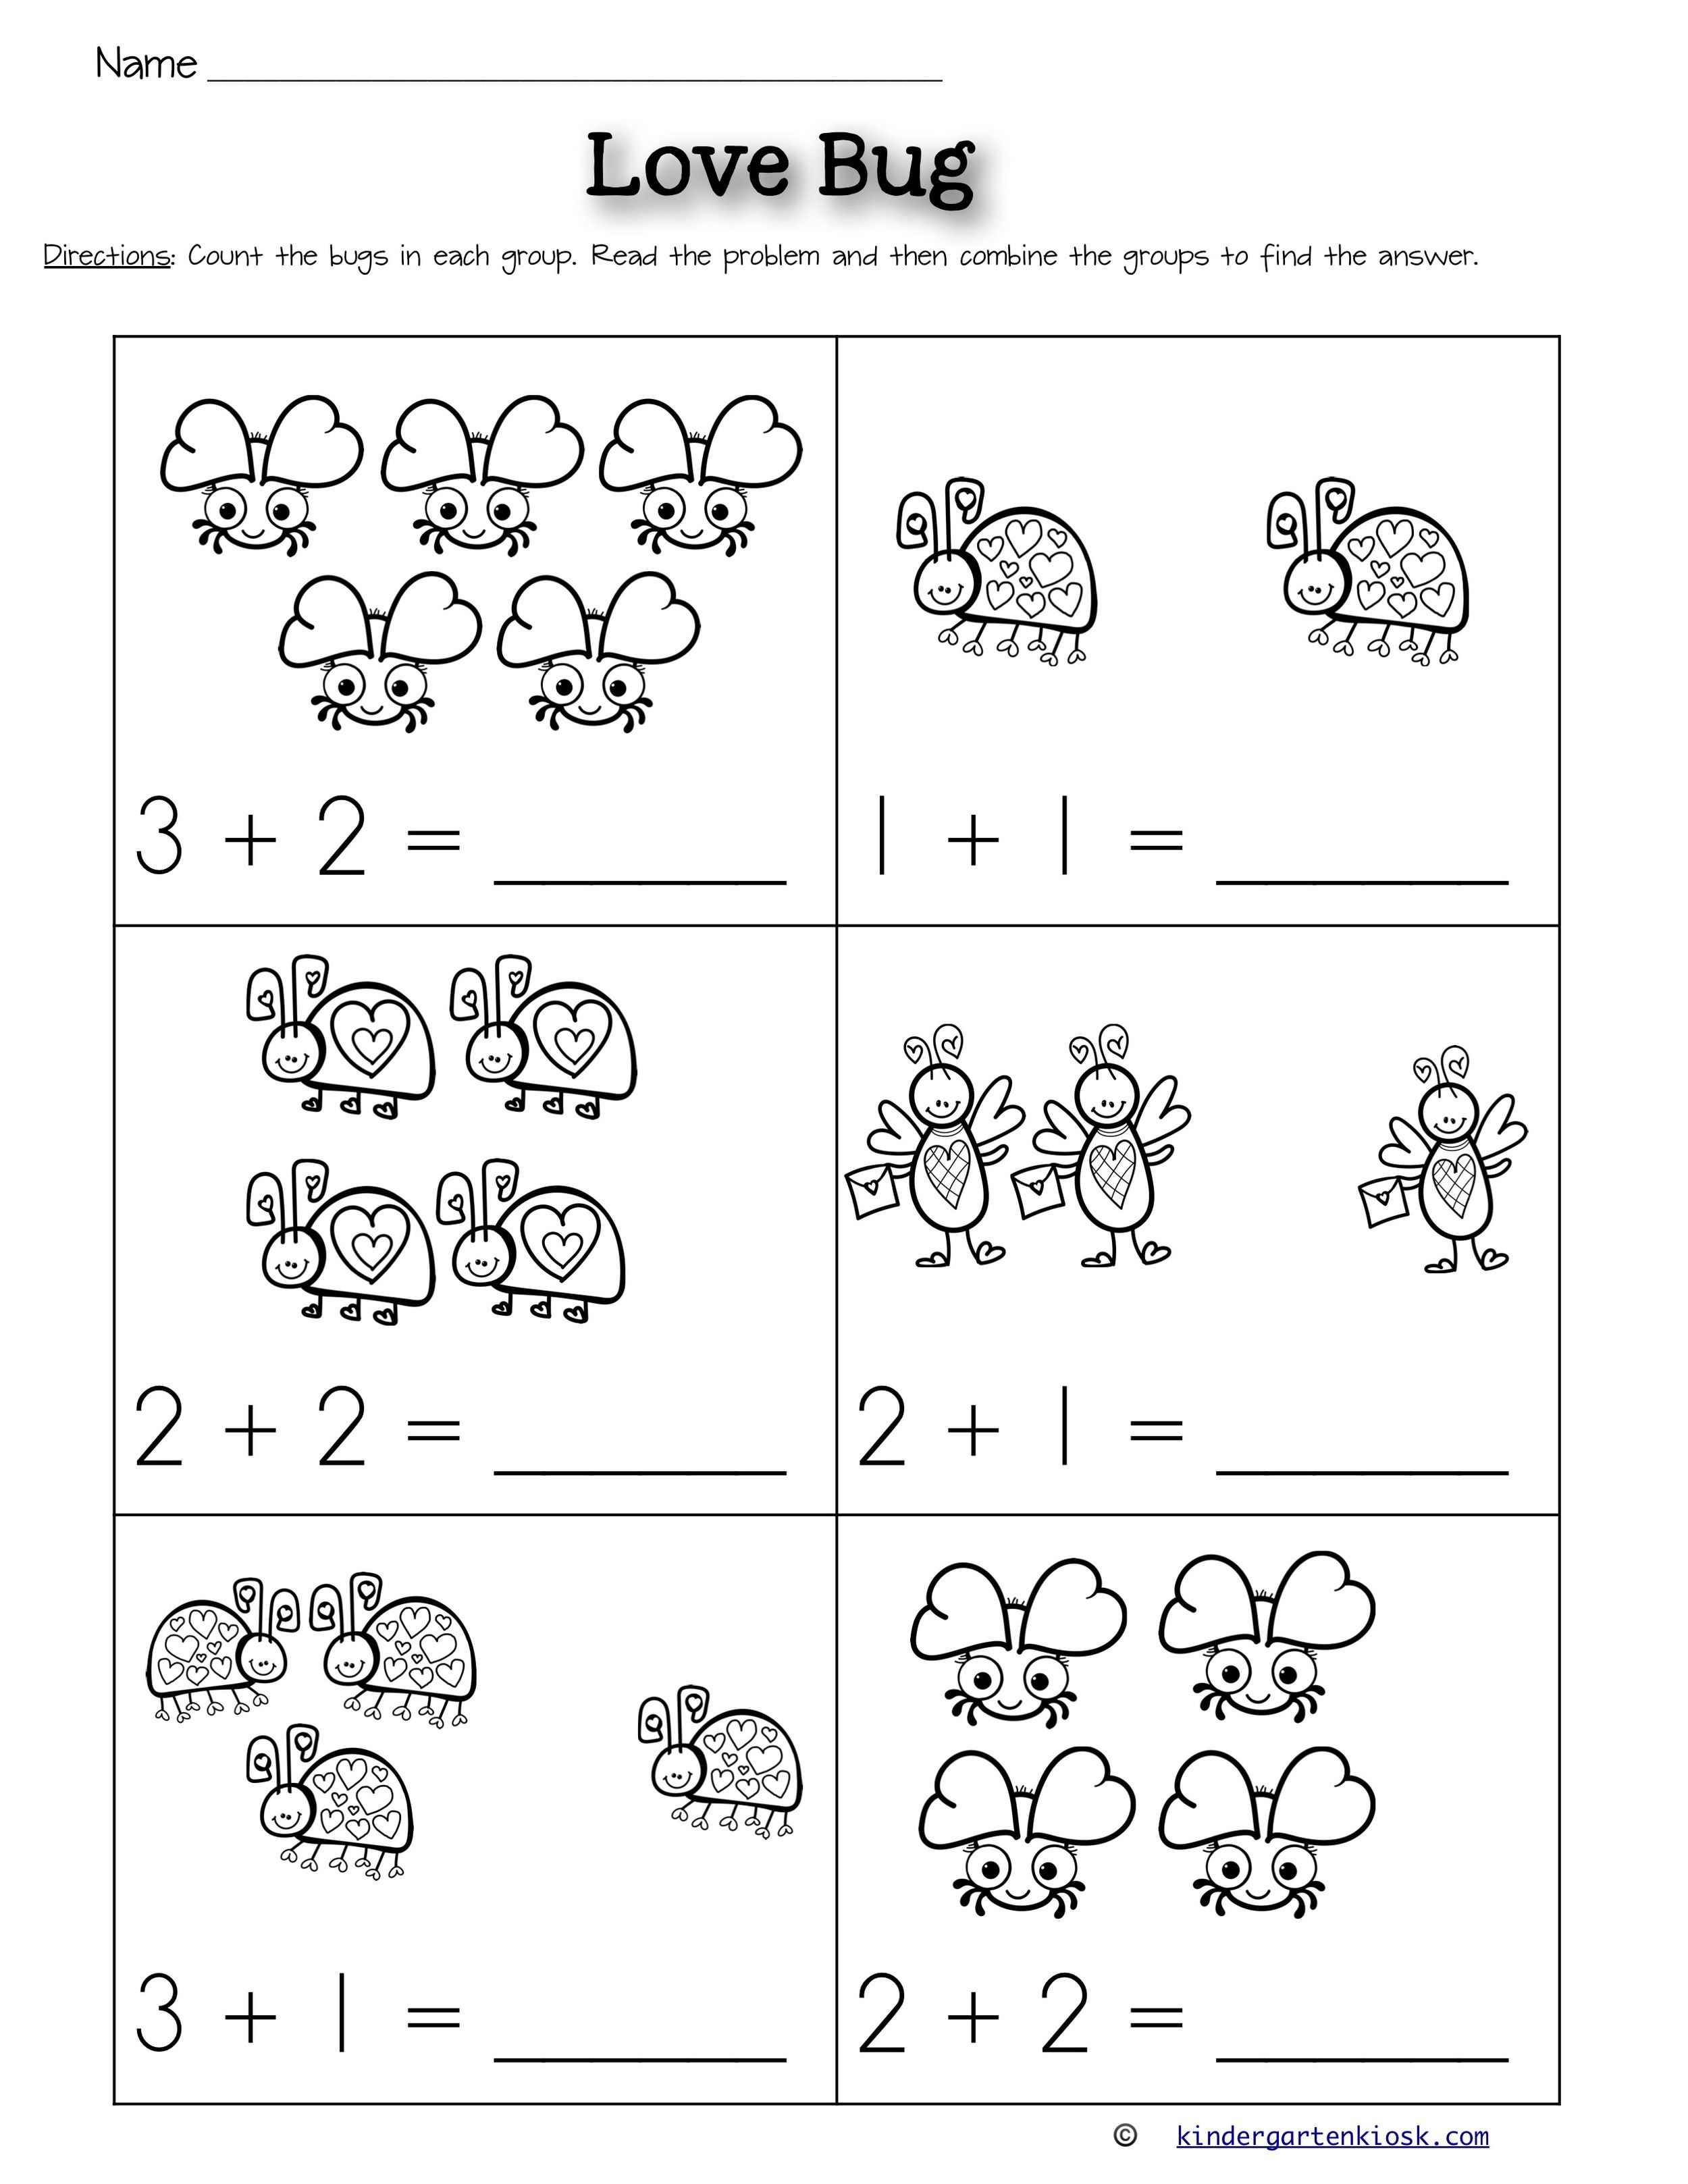 Addition 0-5 Worksheets: February — Kindergarten Kiosk   Kindergarten math worksheets  addition [ 3235 x 2500 Pixel ]